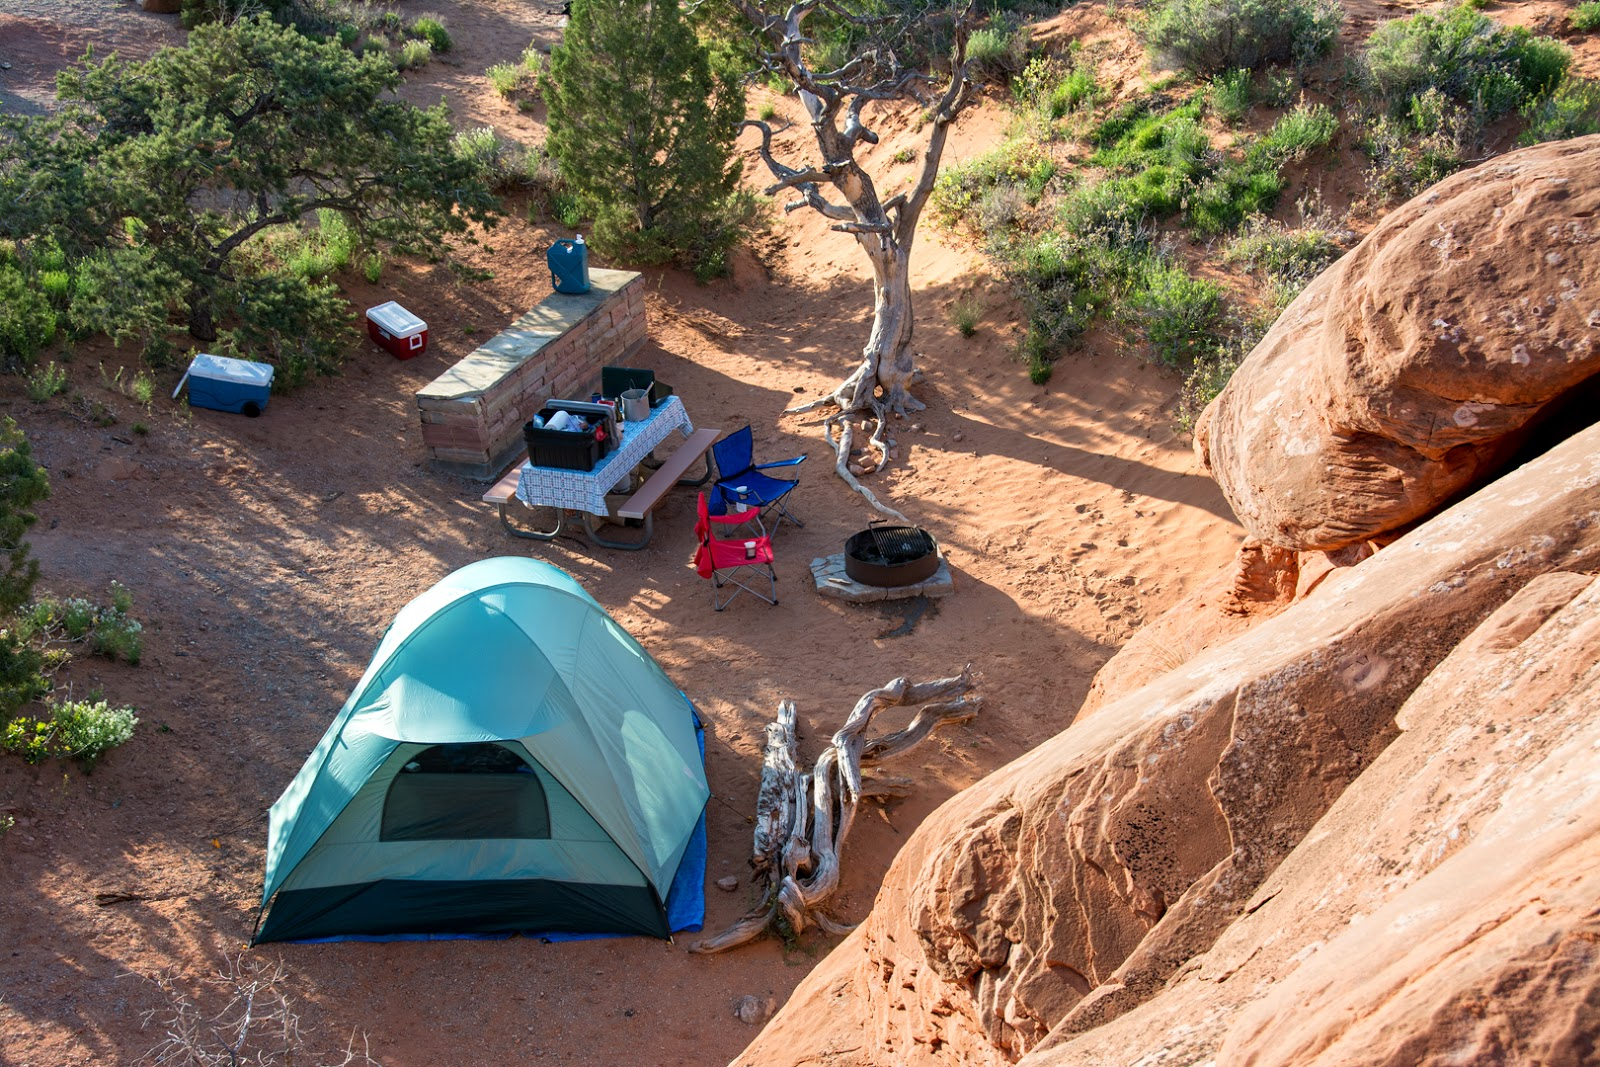 The best and most spectacular hike in the Park is the Fiery Furnace. It is a maze twisting and climbing through fins and pinnacles of salmon-colored ... & Arches National Park: Fiery Furnace u0026 The Windows | Travel Adventure